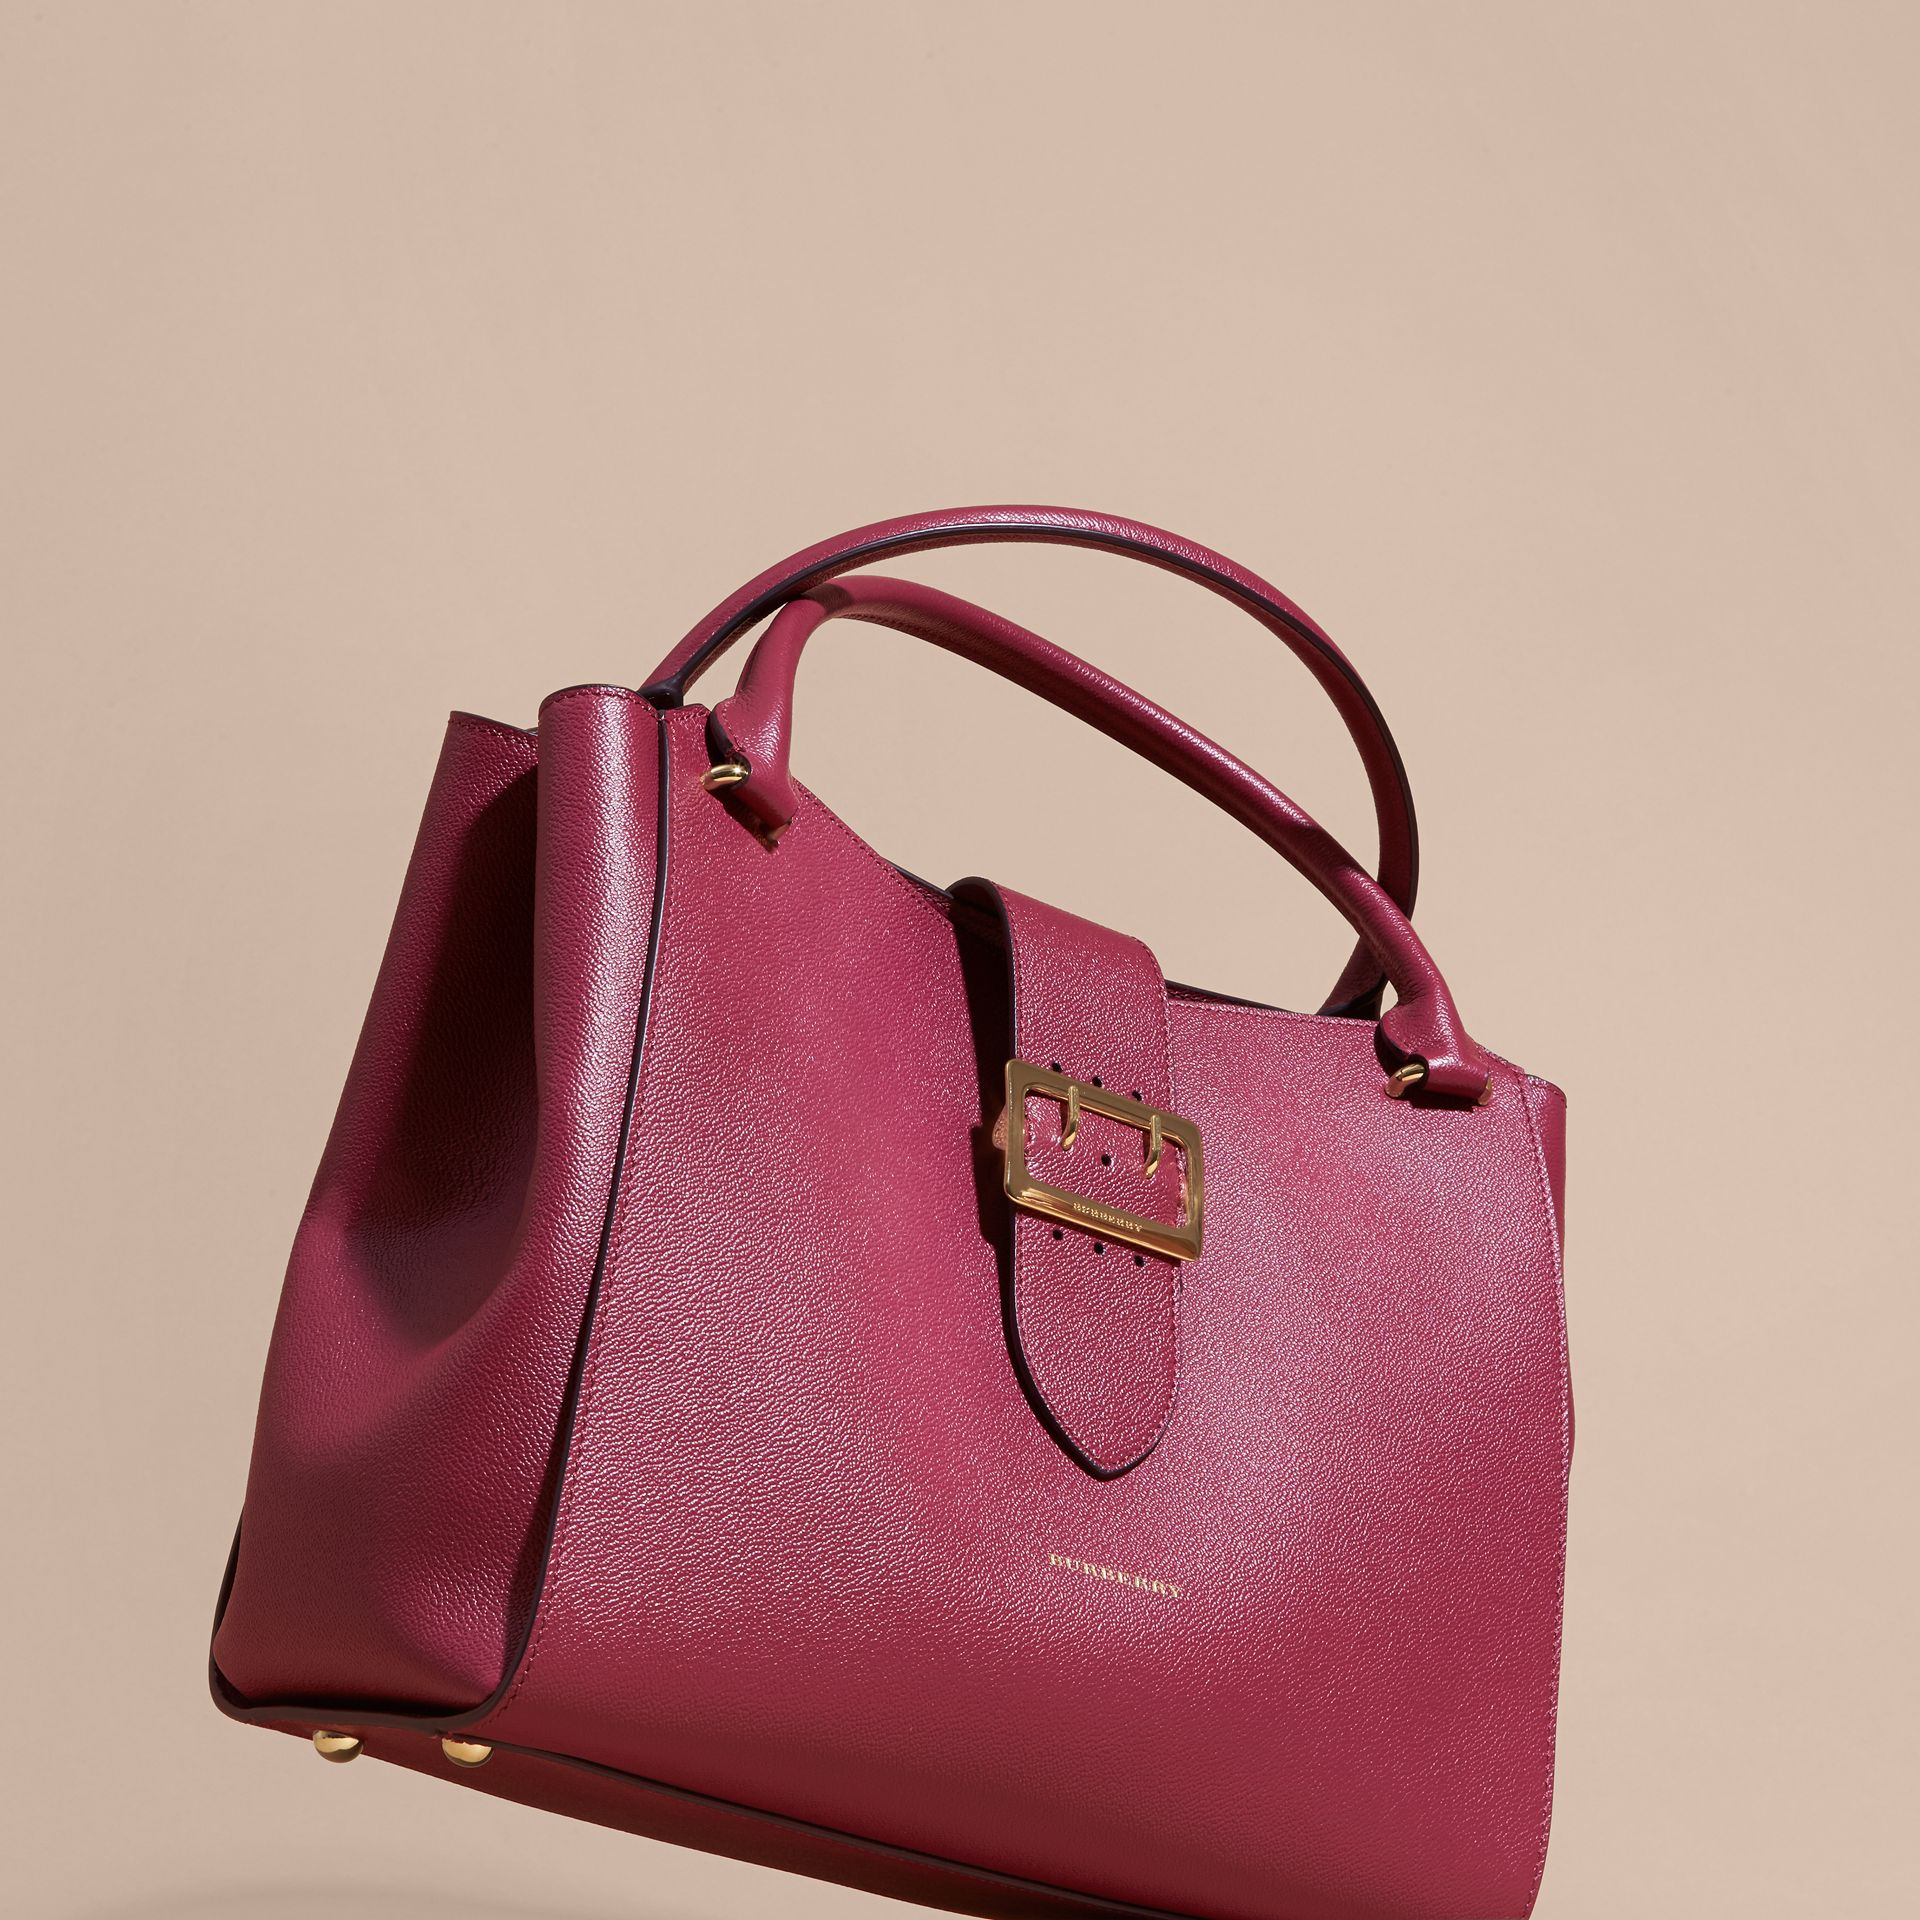 The Large Buckle Tote in Grainy Leather in Dark Plum - Women | Burberry - gallery image 8